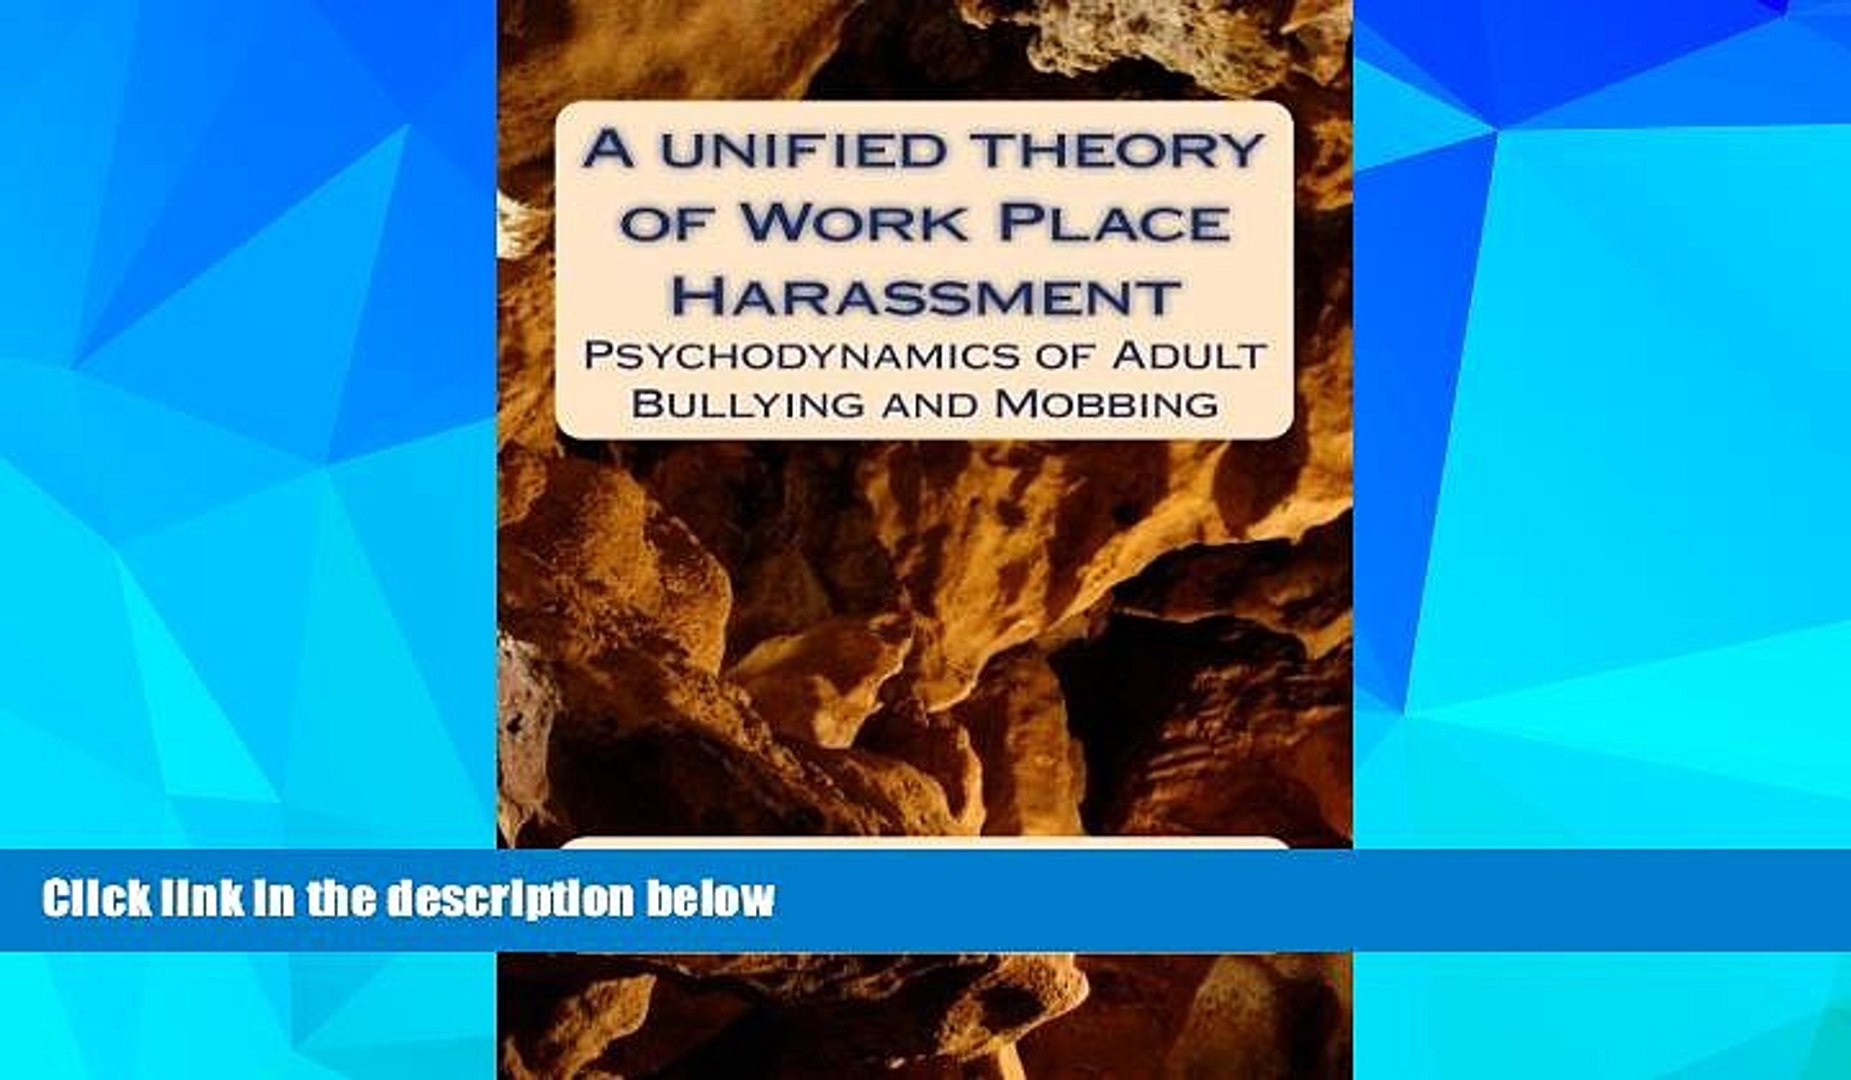 A Unified Theory of Work Place Harassment - Psychodynamics of Mobbing